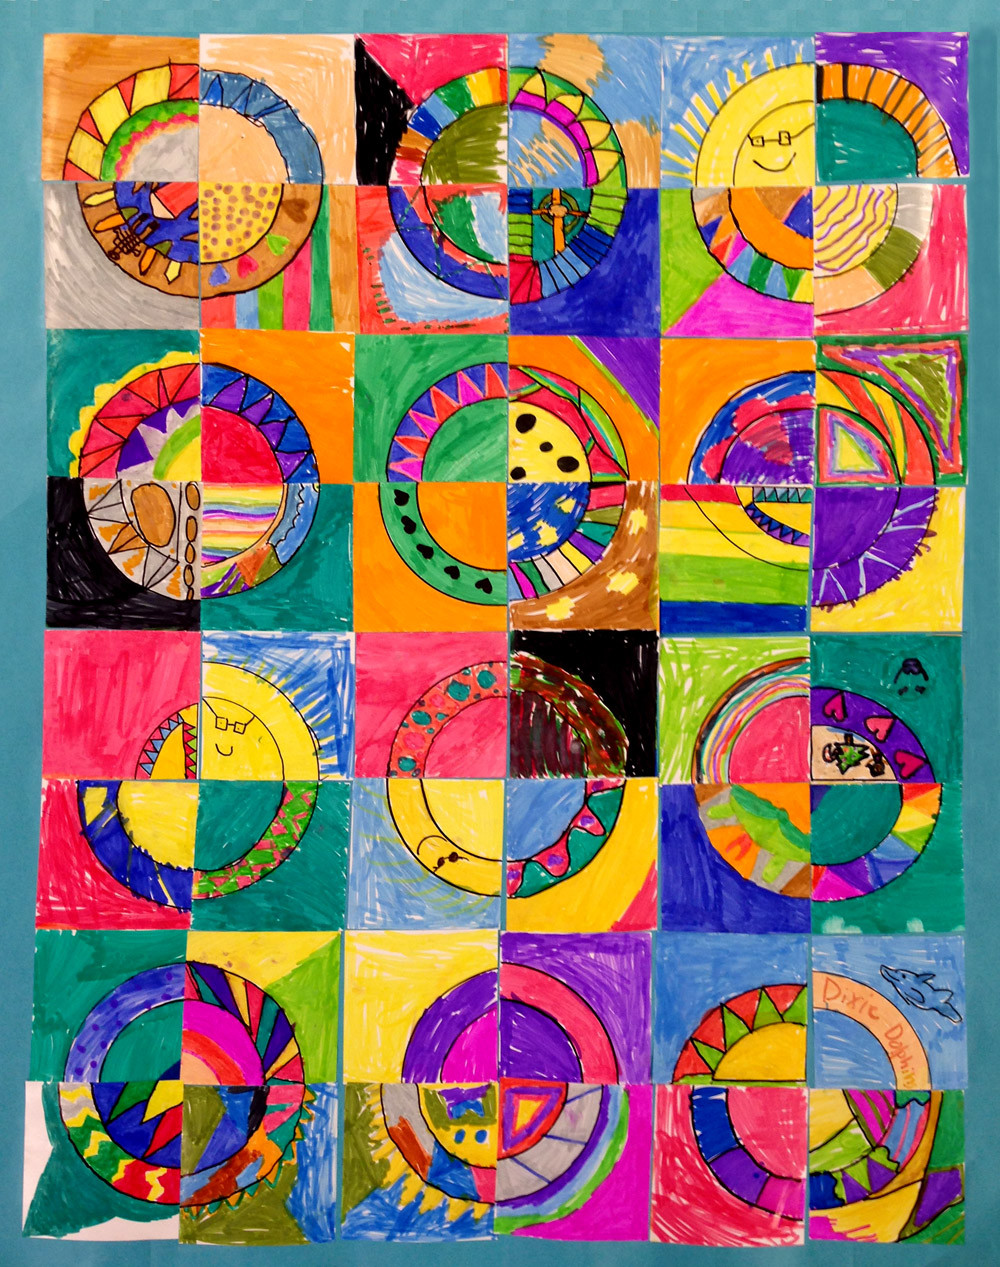 Best ideas about Group Art Project For Kids . Save or Pin Paper Quilts Art Projects for Kids Now.